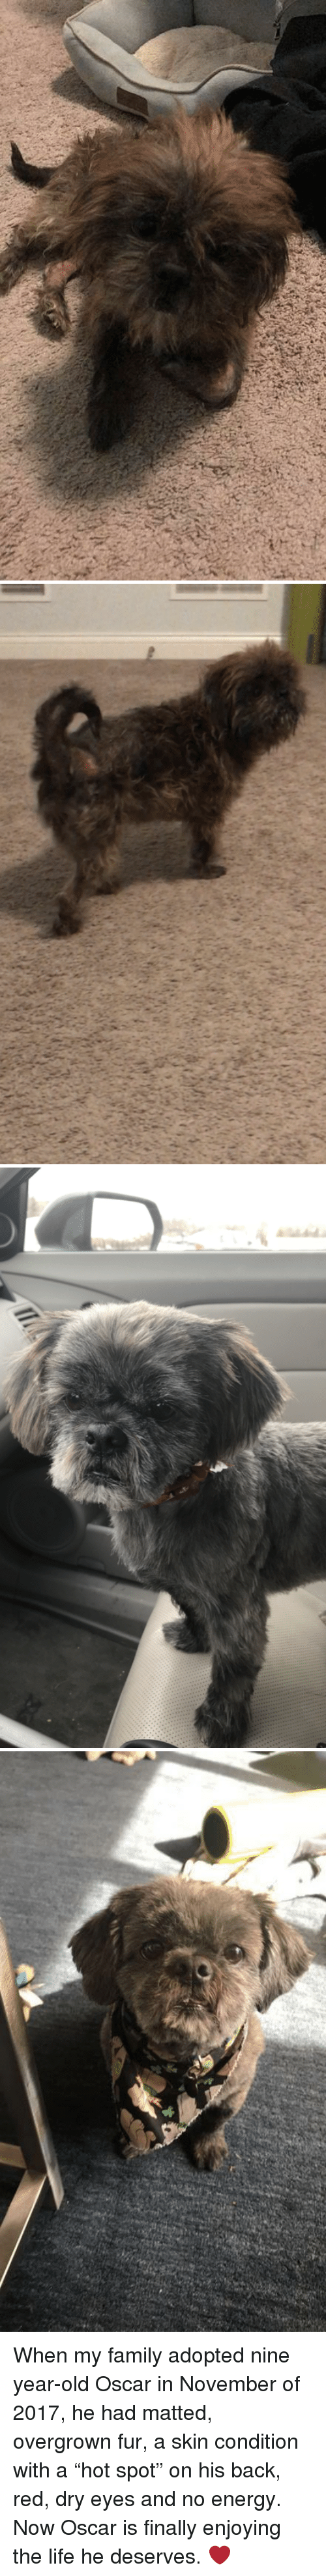 """Energy, Family, and Life: When my family adopted nine year-old Oscar in November of 2017, he had matted, overgrown fur, a skin condition with a """"hot spot"""" on his back, red, dry eyes and no energy. Now Oscar is finally enjoying the life he deserves. ❤️"""